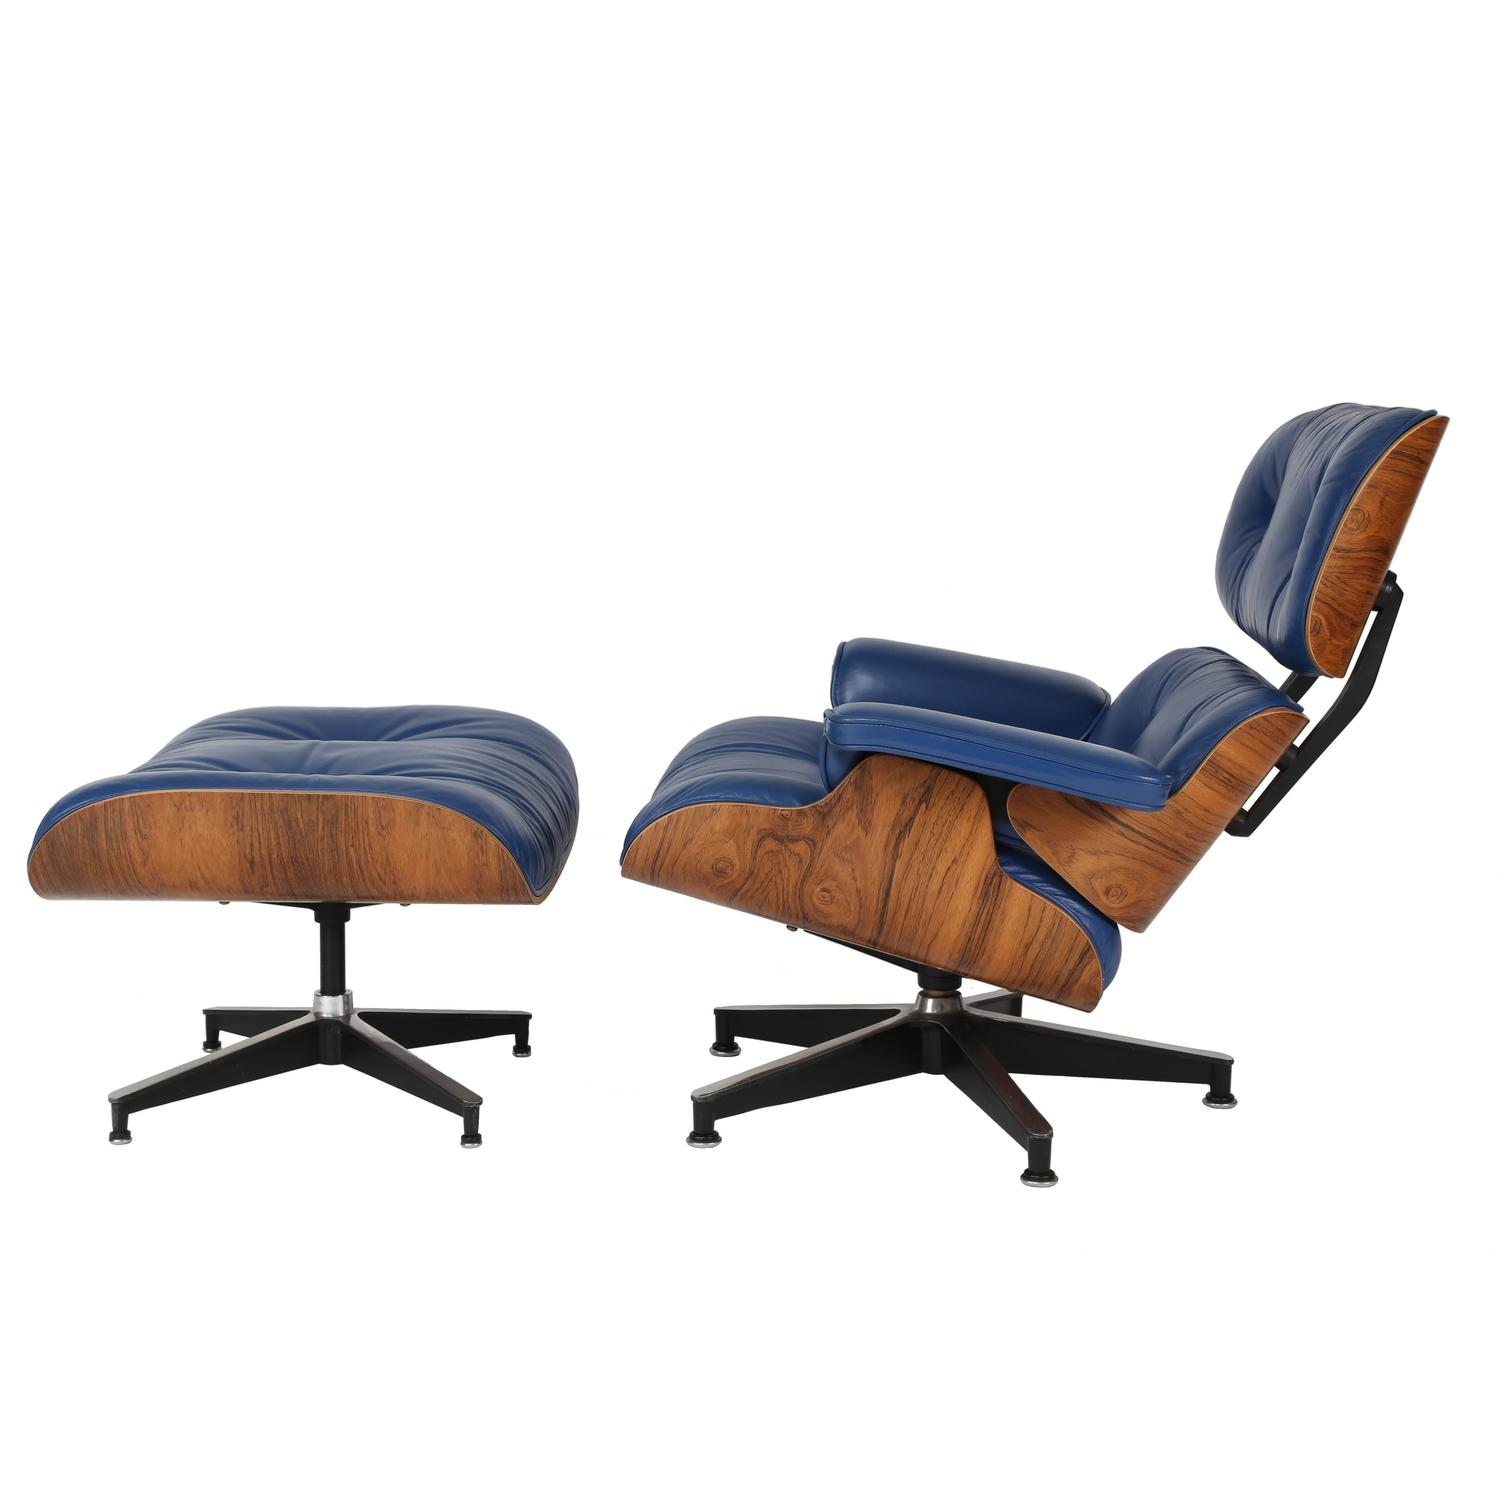 vintage 670 671 eames rosewood lounge chair and ottoman in blue